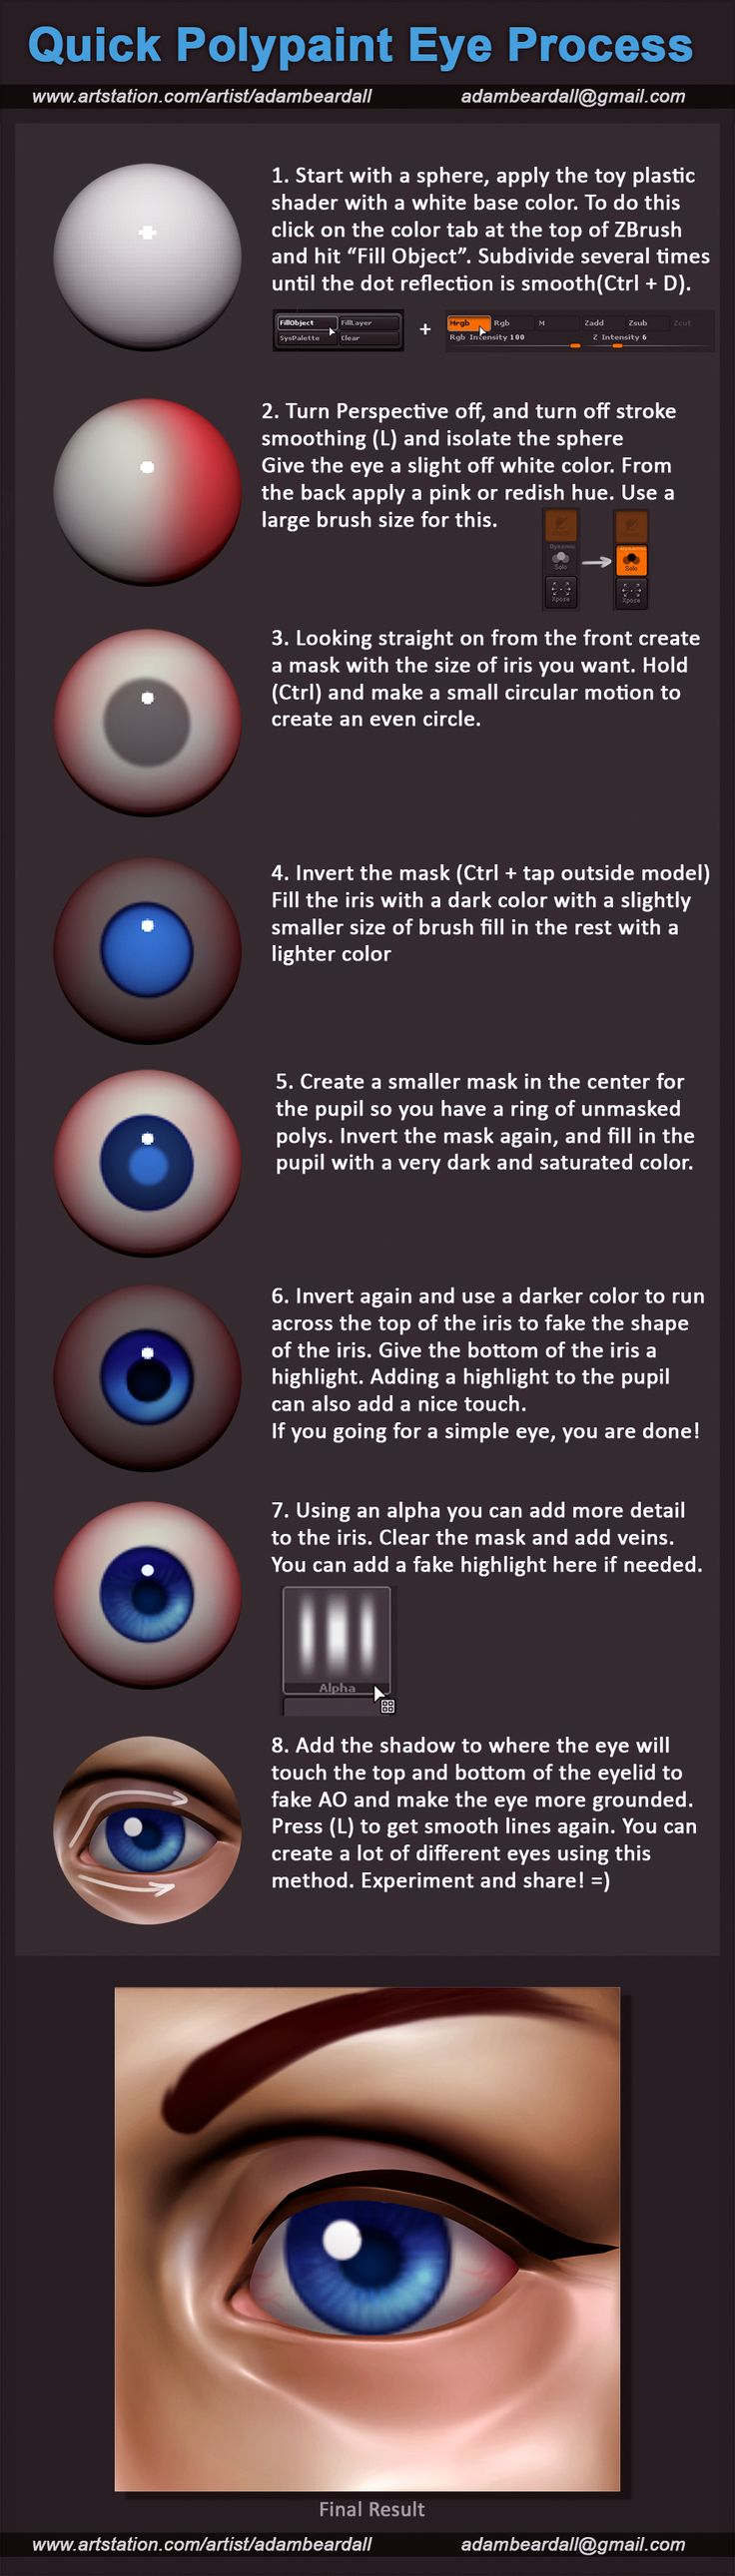 ArtStation - Polypaint Eye Tutorial, Adam Beardall